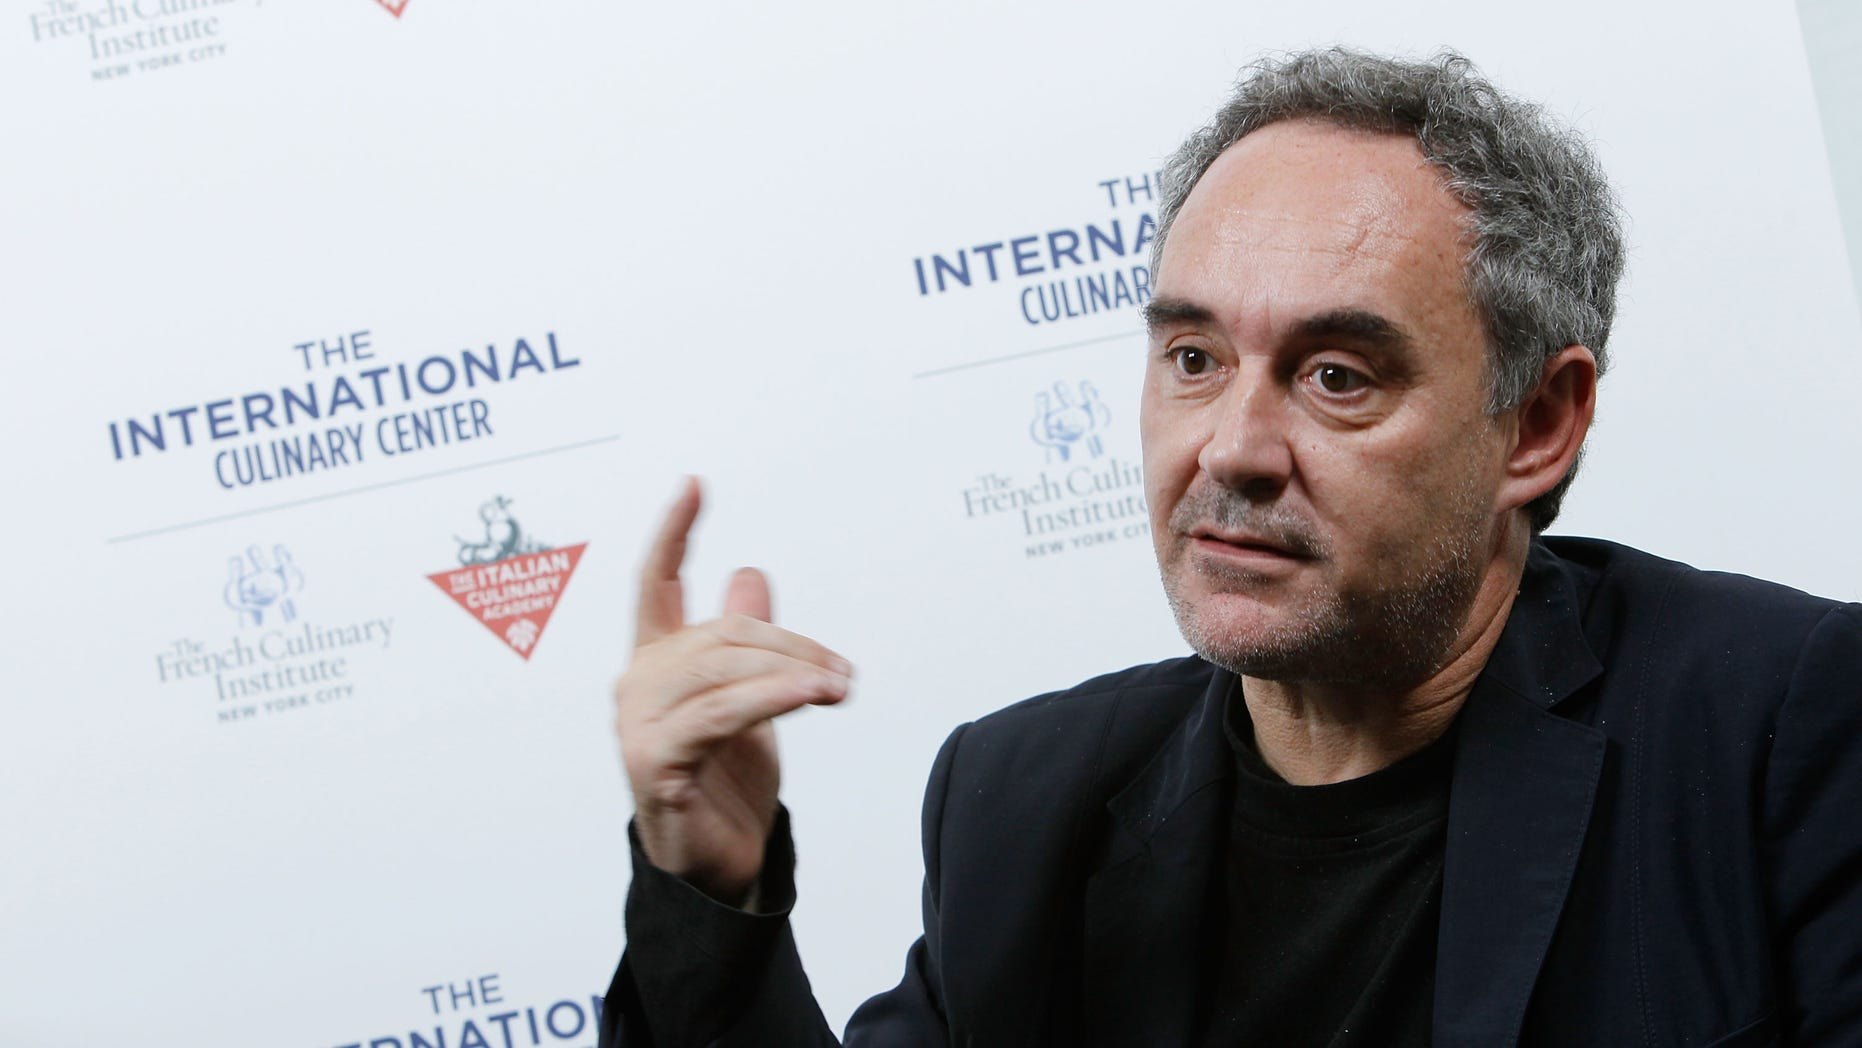 NEW YORK - OCTOBER 12:  Chef Chef Ferran Adria speaks at The International Culinary Center on October 12, 2010 in New York City.  (Photo by Mark Von Holden/Getty Images for The International Culinary Center)